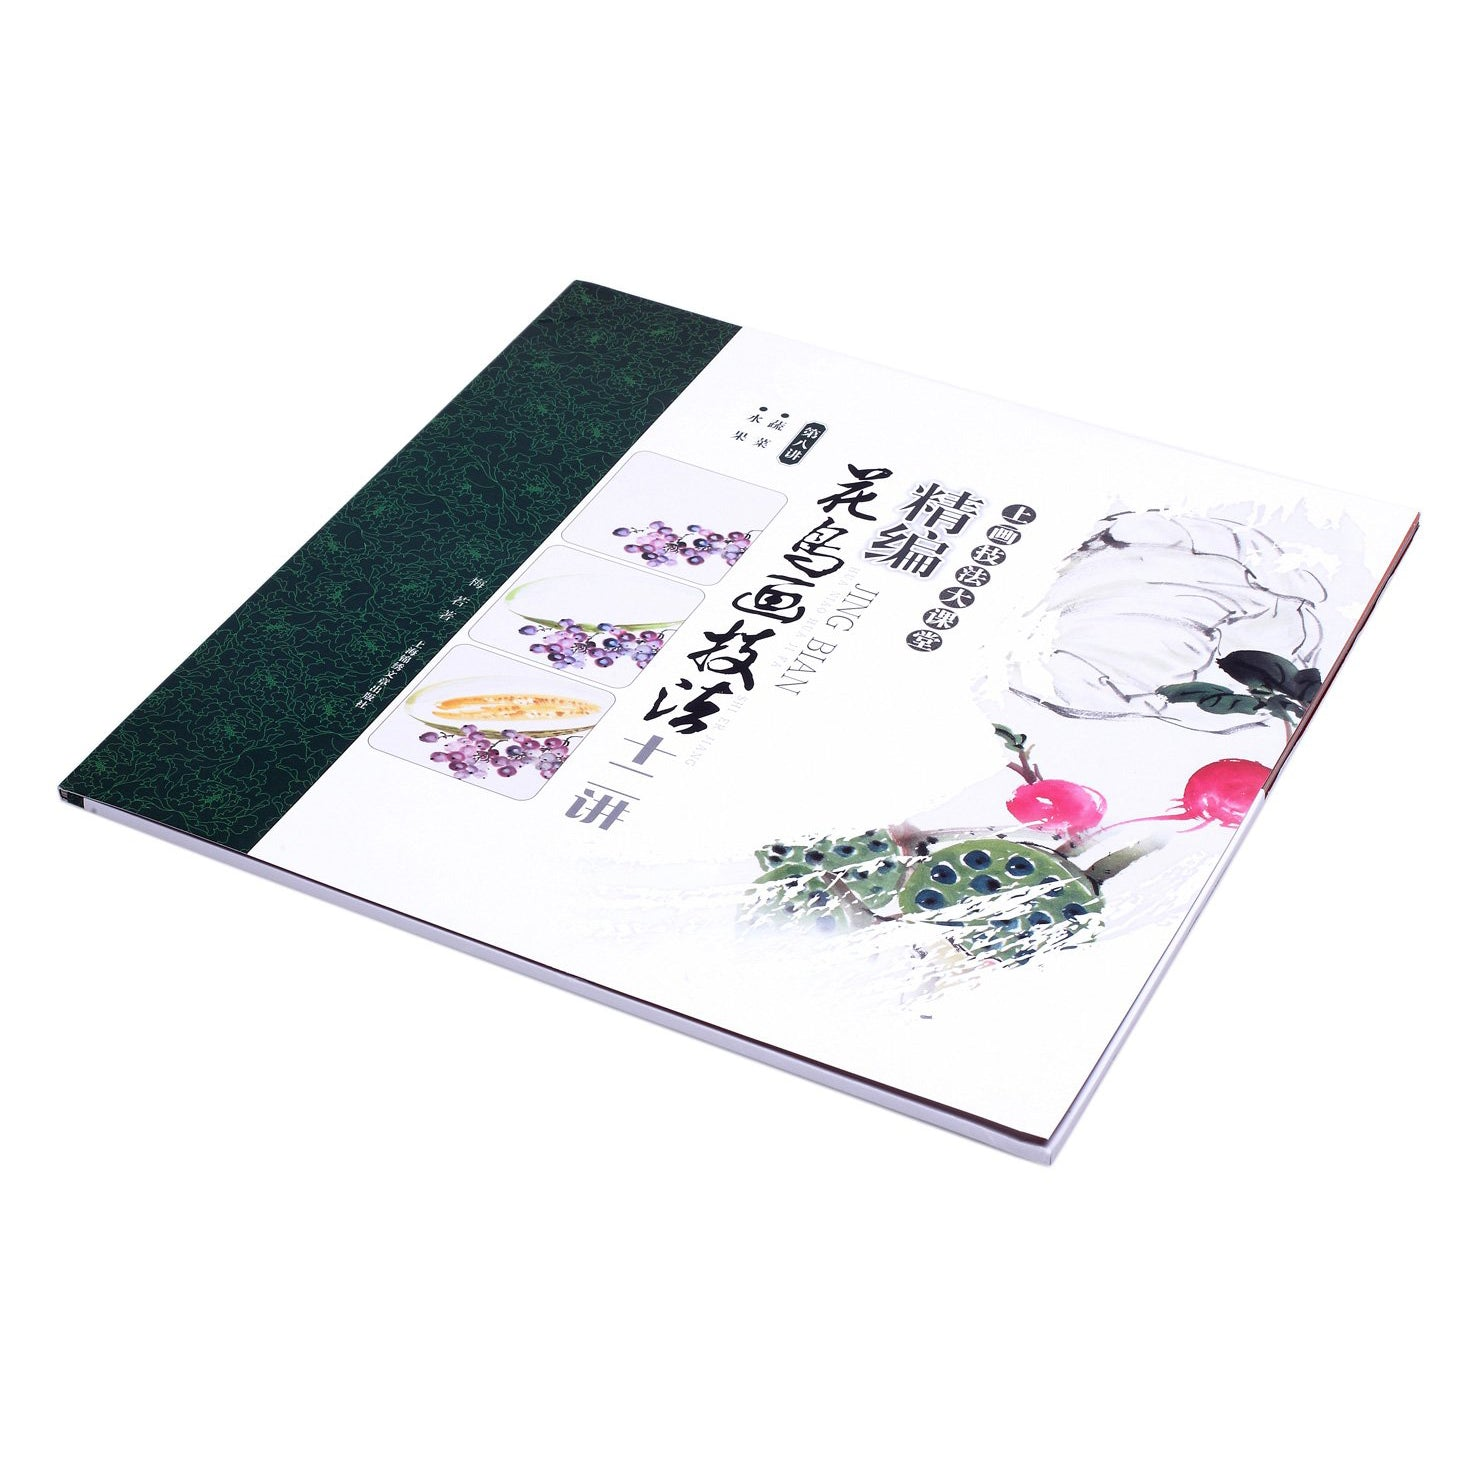 This edition of the easy to use May™s Painting Card series focuses on painting vegetables in Chinese and Japanese brush painting